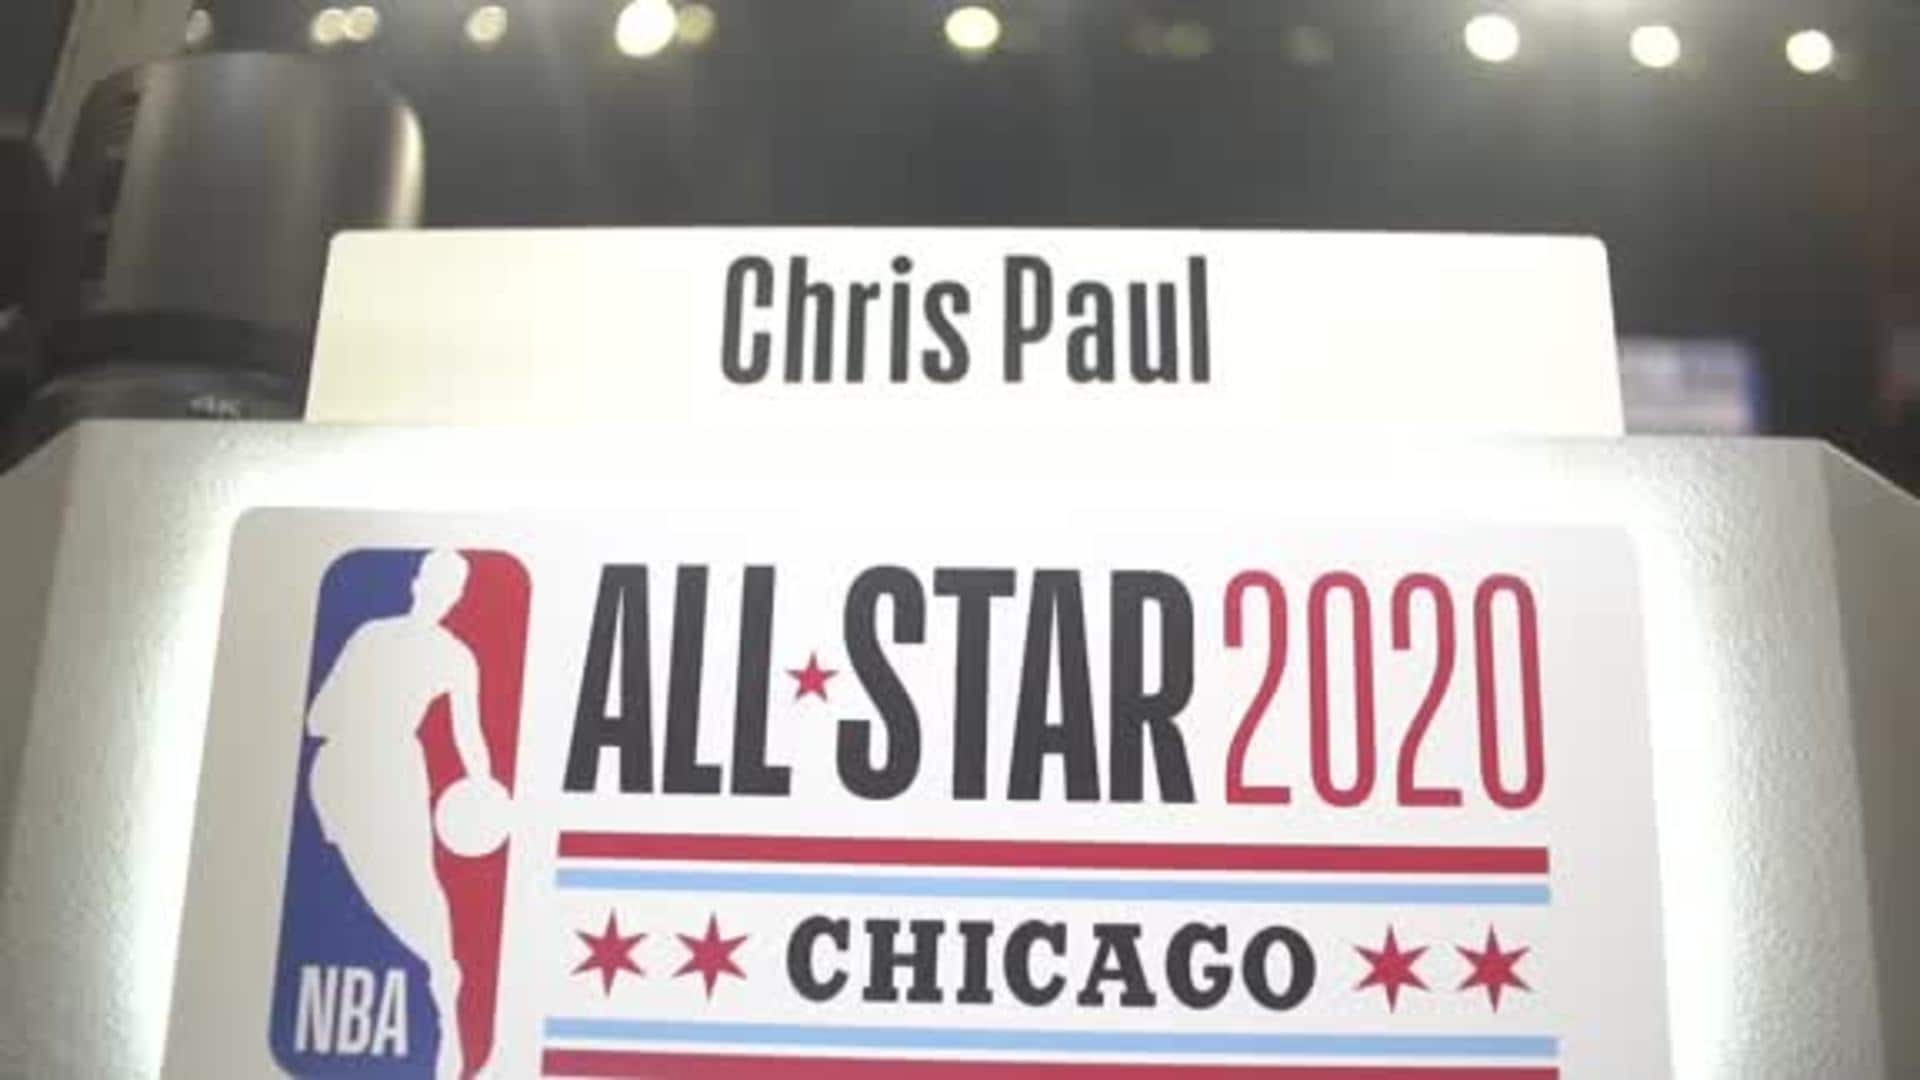 Sights and Sounds With All-Star Chris Paul